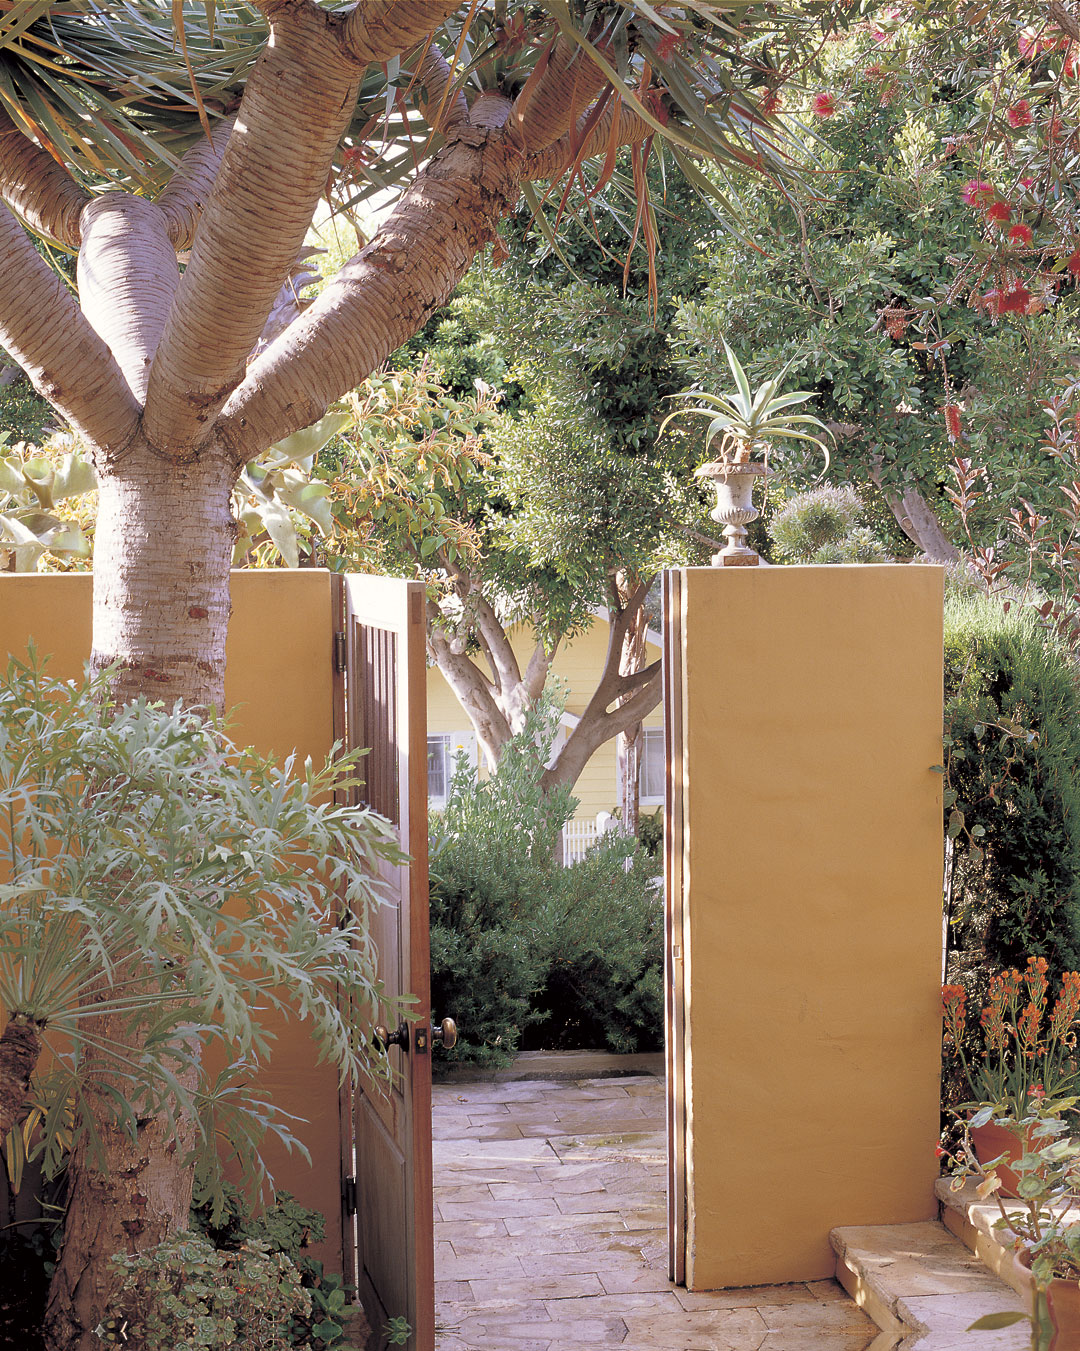 Pacific horticulture society a mediterranean courtyard for Mediterranean courtyards photos